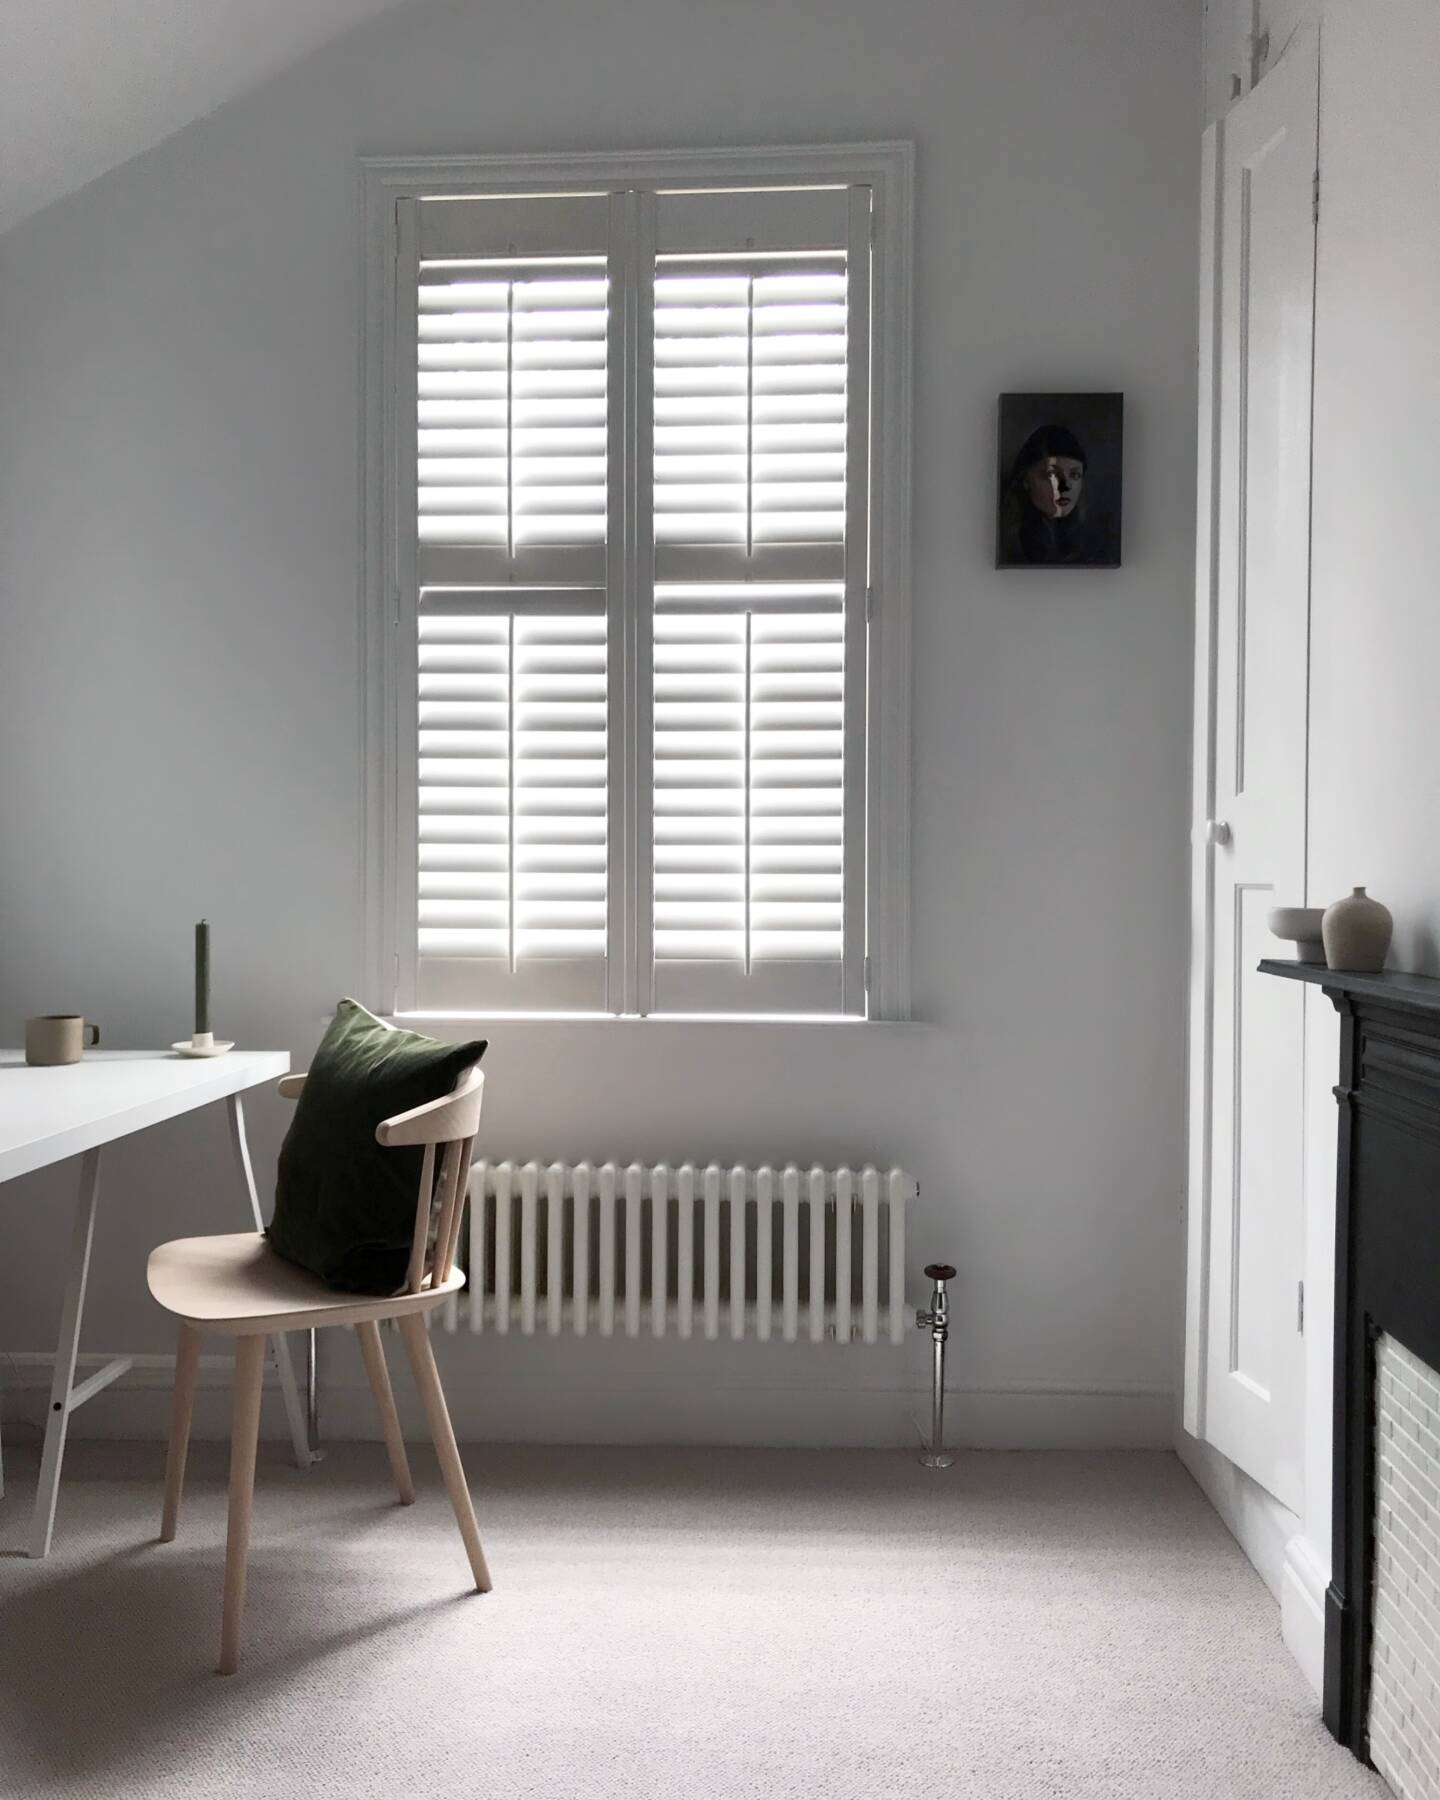 Donna's low level Milano Windsor column radiator under a window